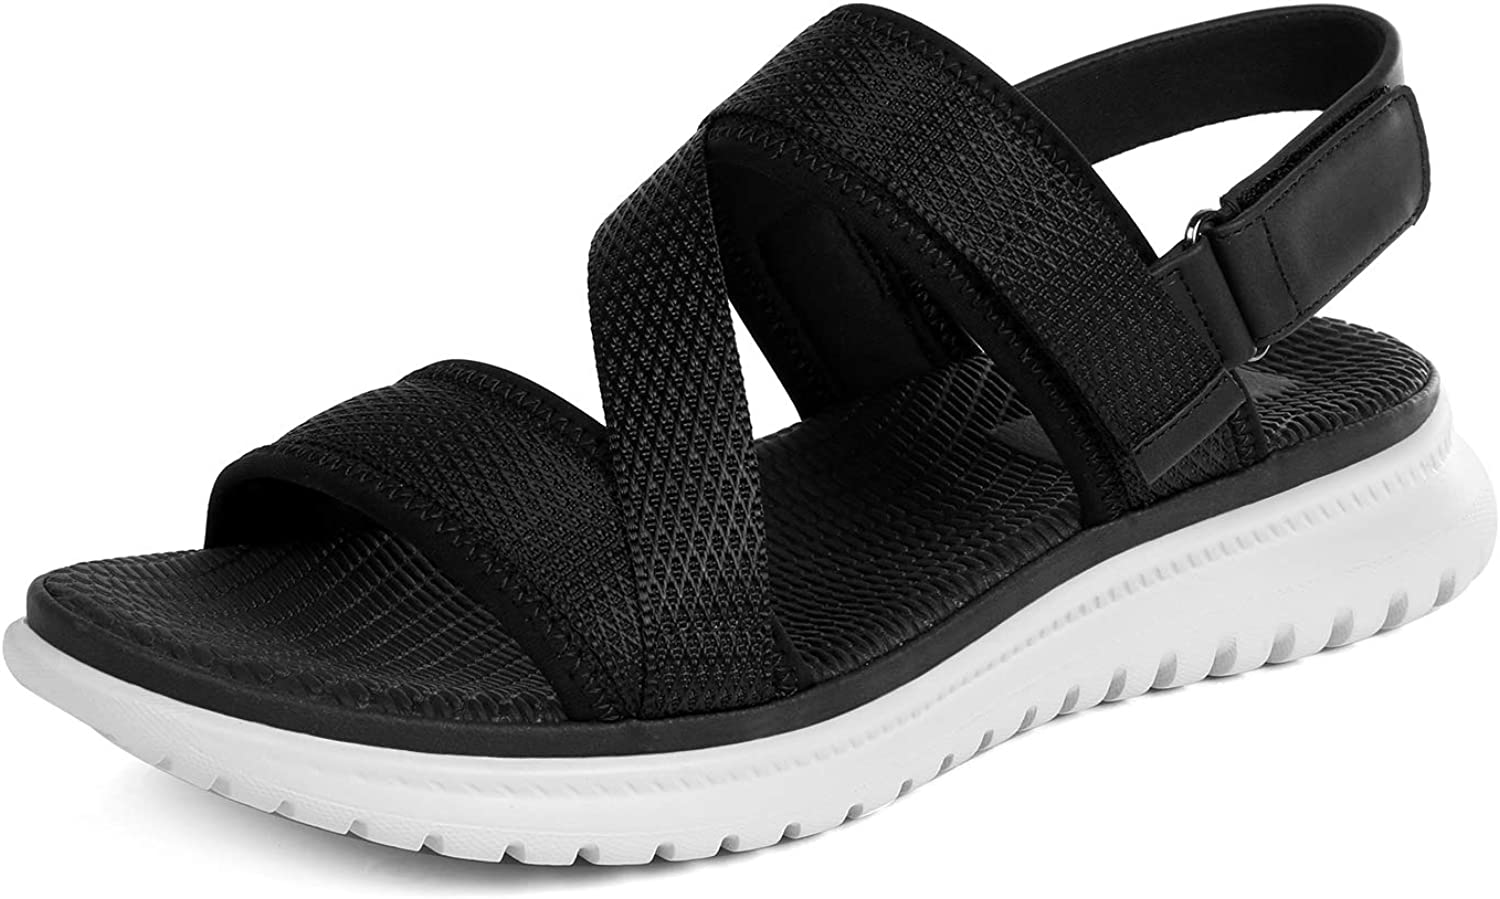 Dacomfy Women's Wedge Sandals Casual Summer Shoes Outdoor Beach Sandals Comfortable Slip on Sport Sandal